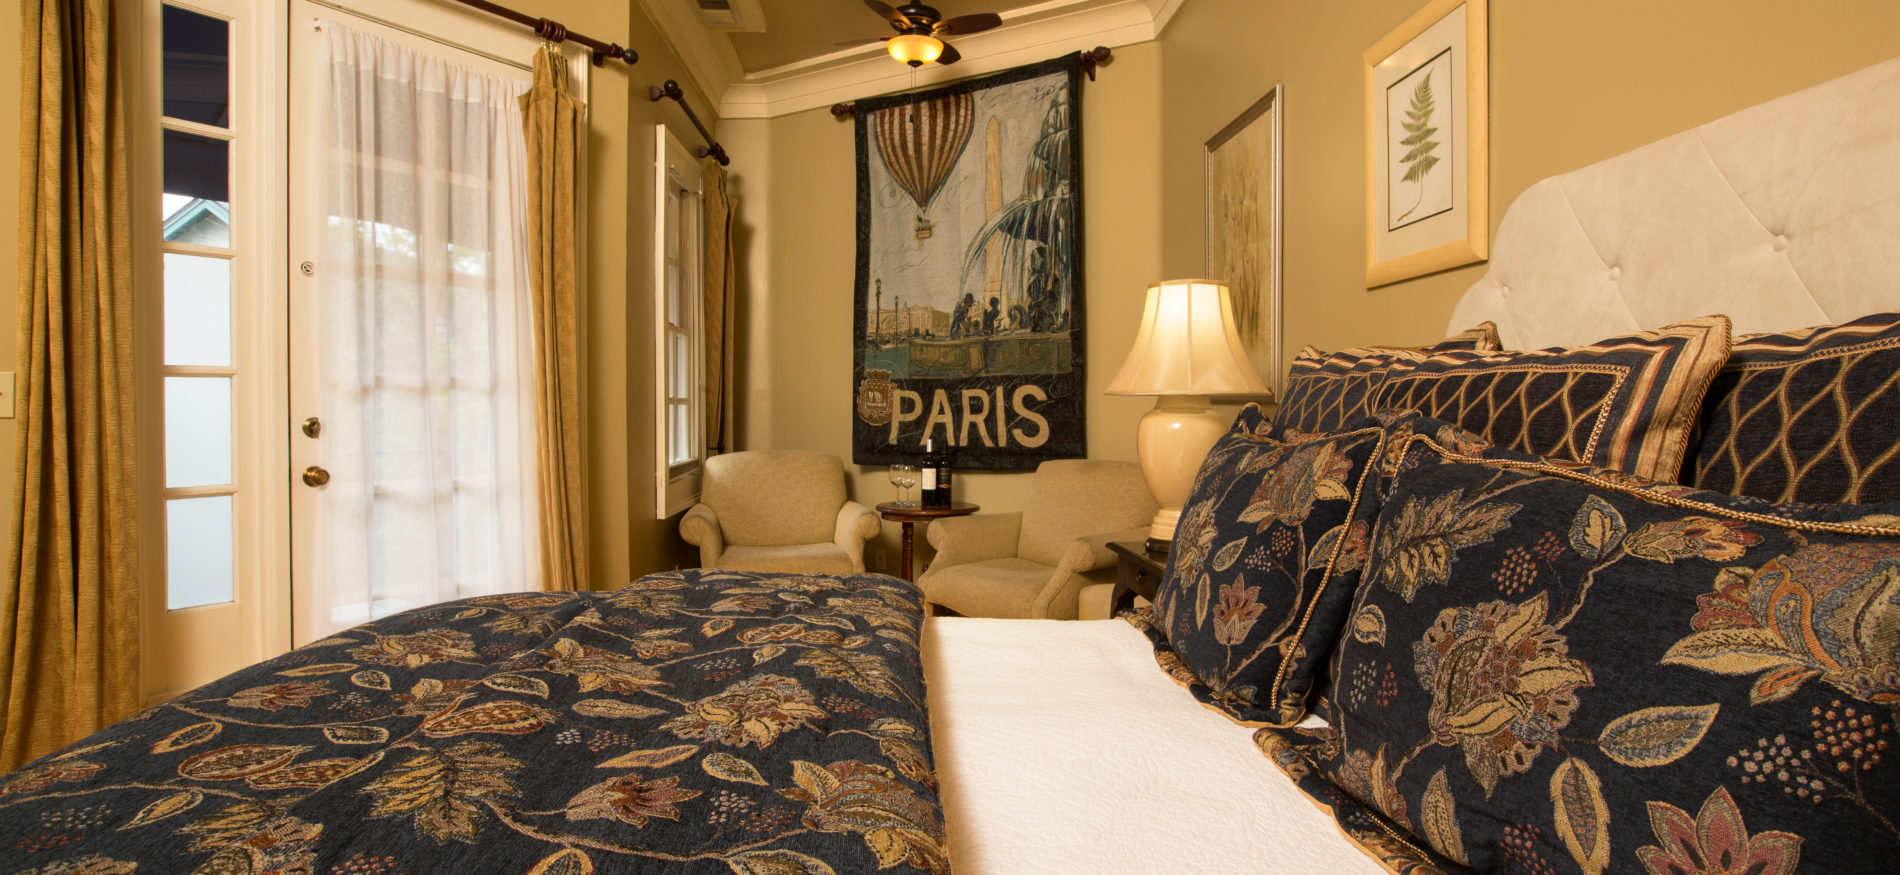 Cream and yellow guestroom with close up of the black and gold paisley bedspread with Paris tapestry on wall